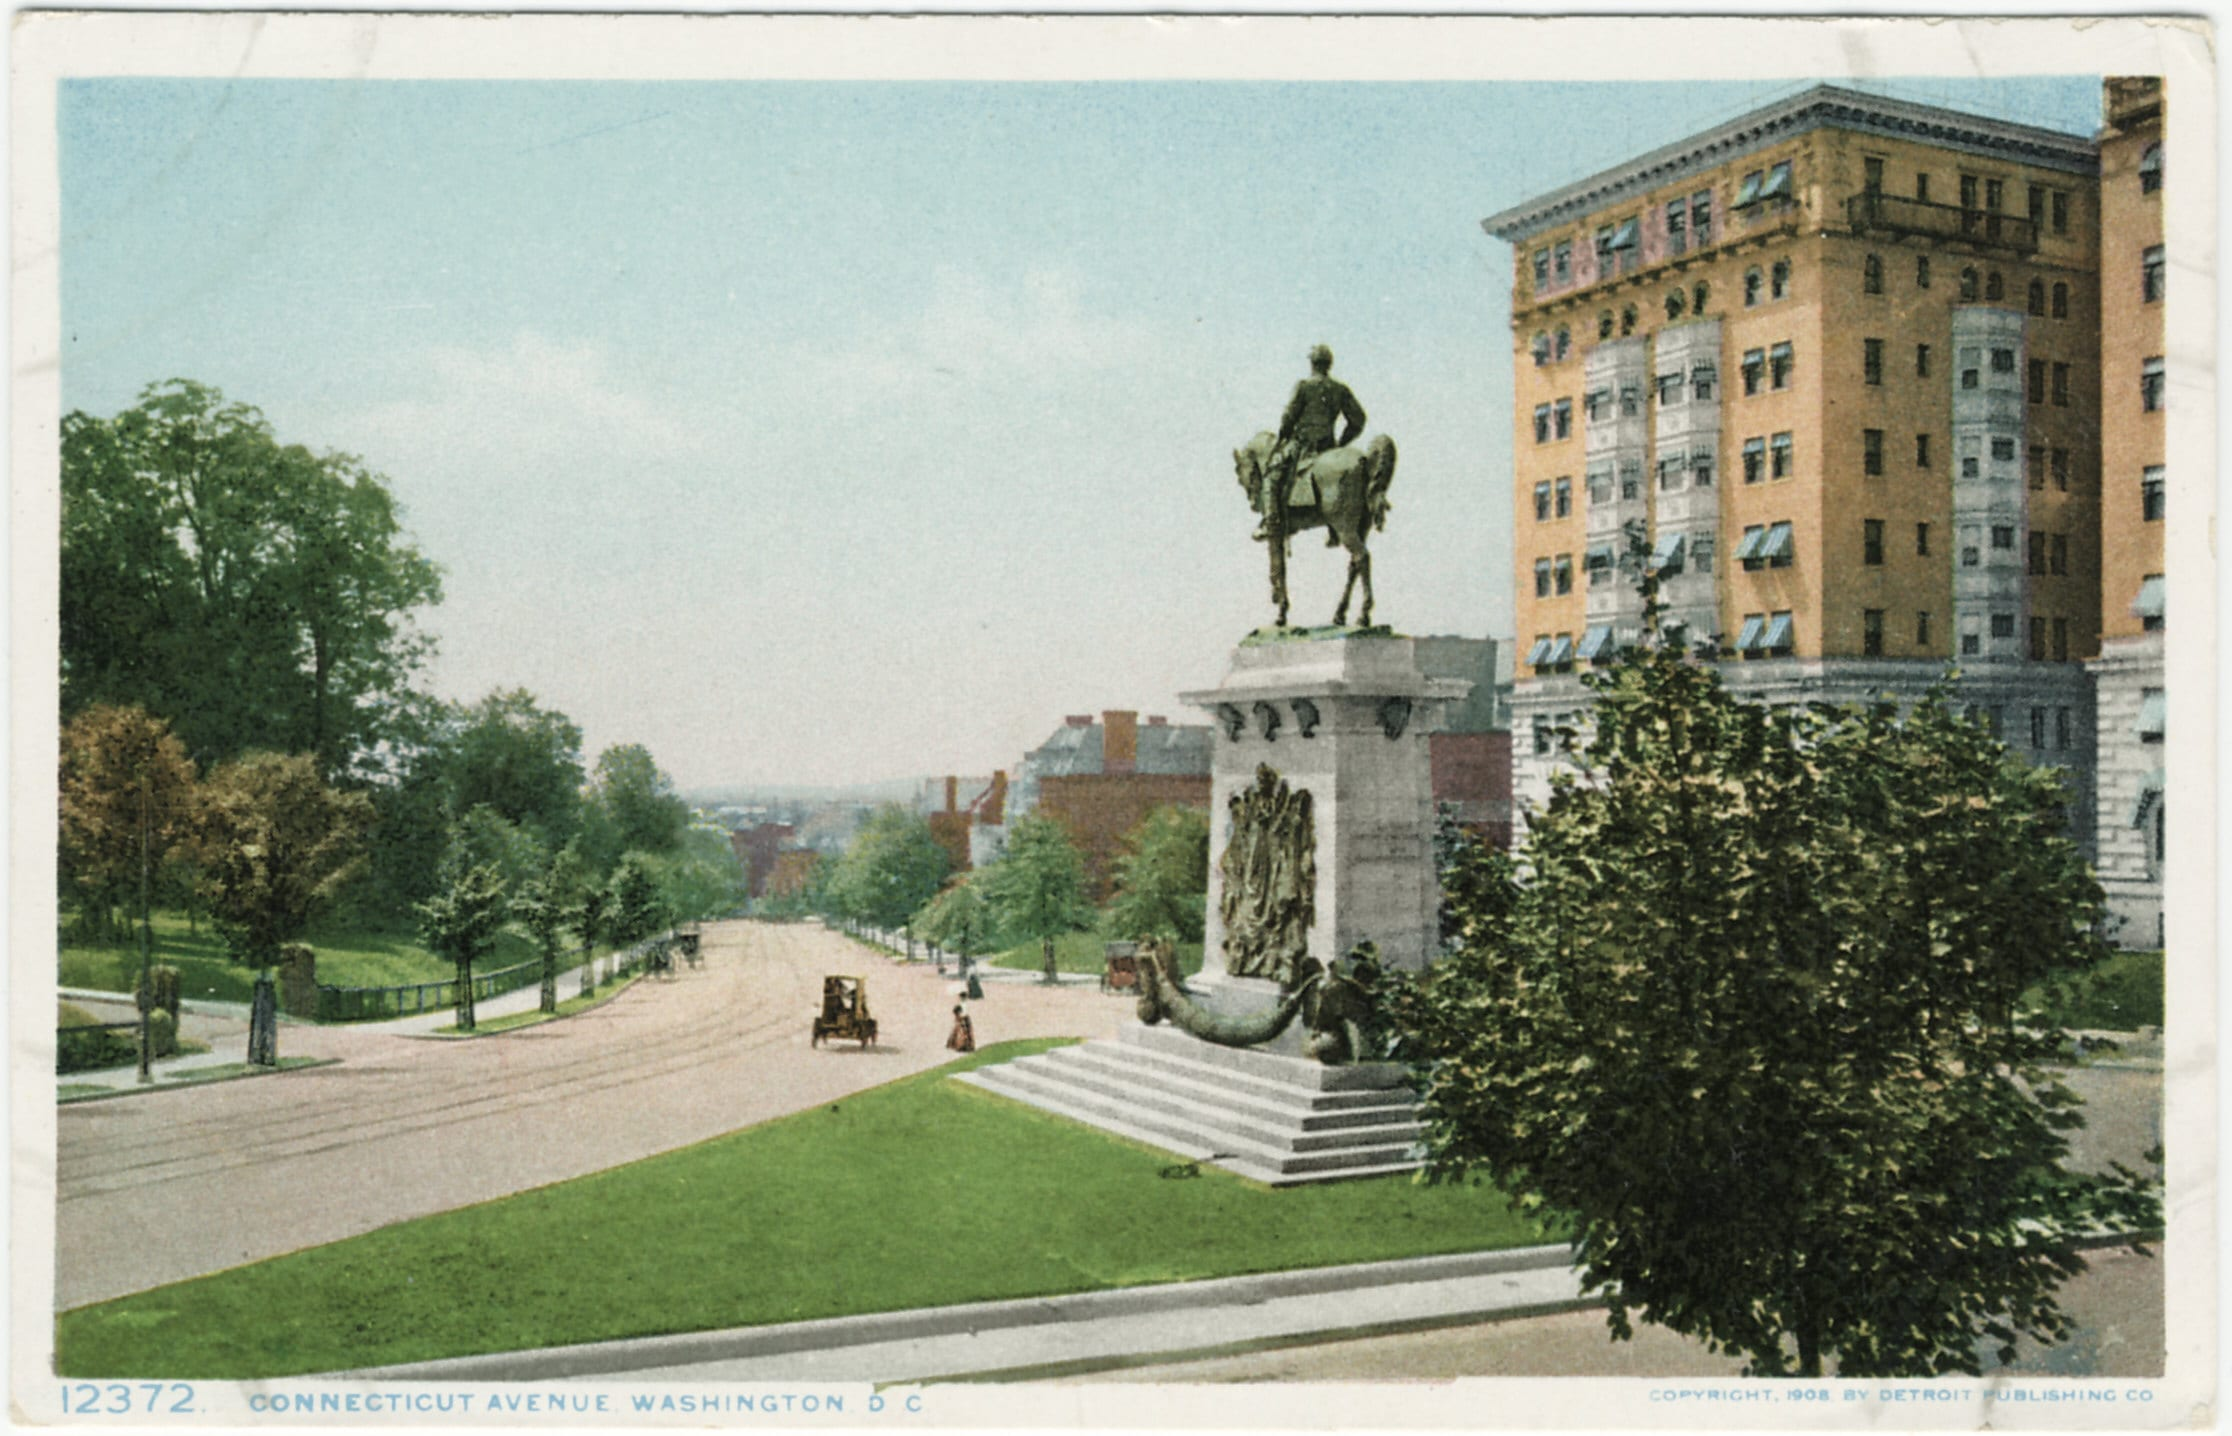 Awesome 1908 Postcard View of Connecticut Avenue